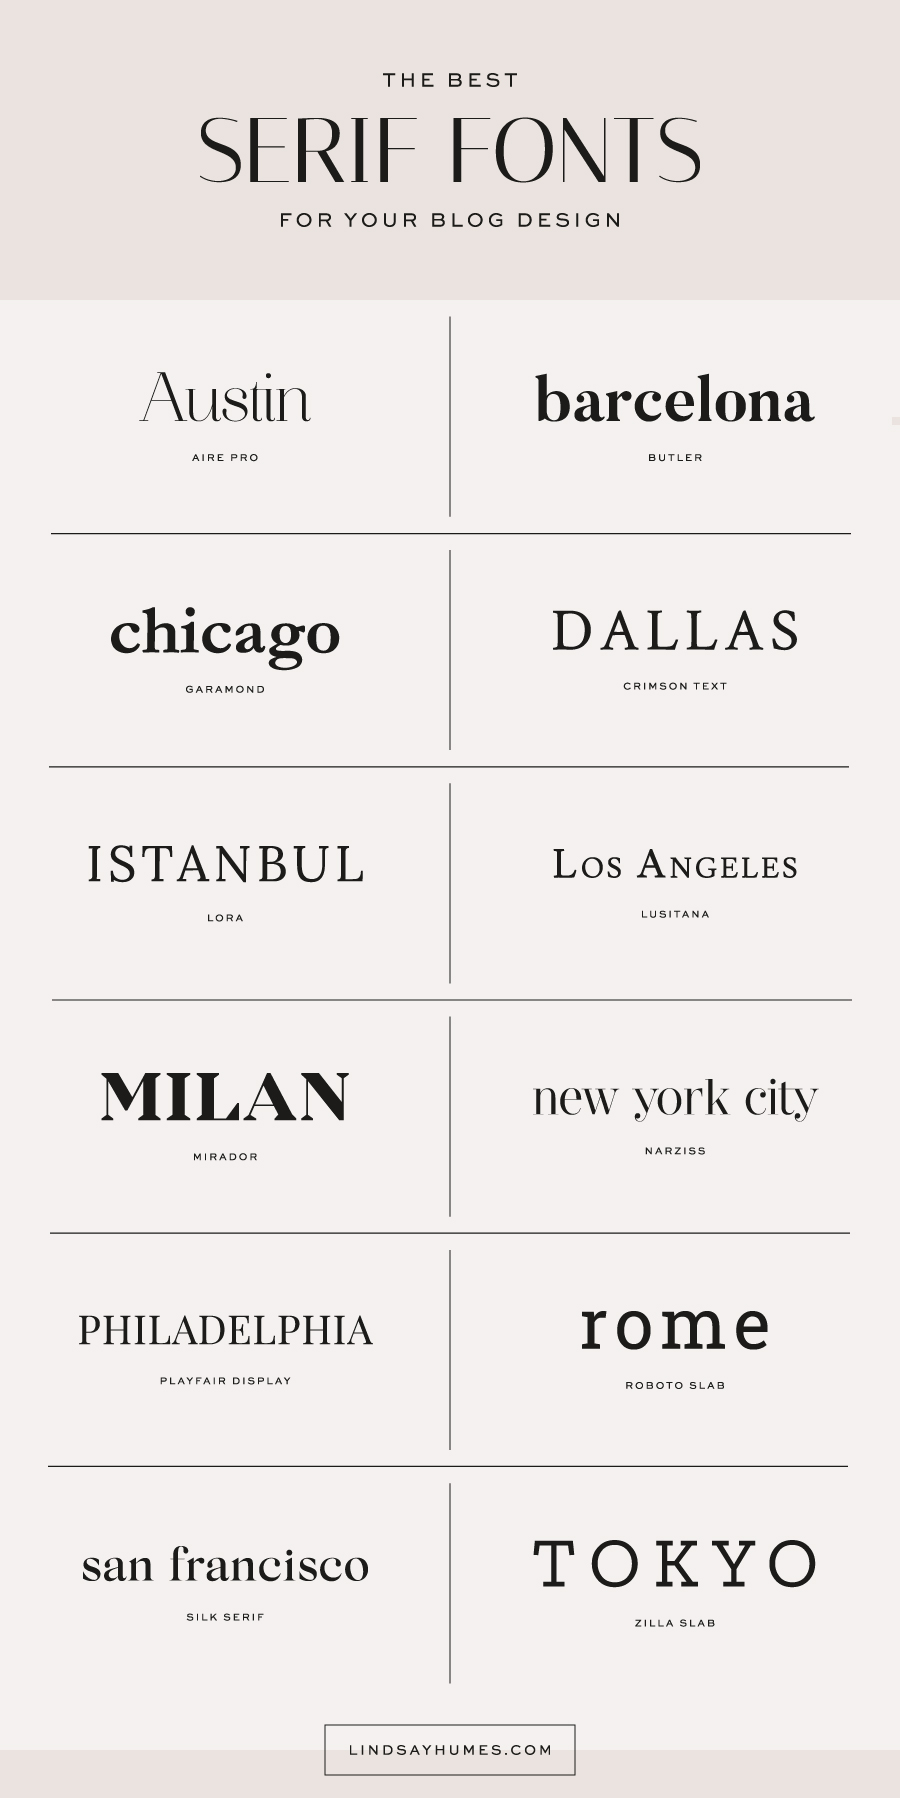 The Best Serif Fonts for Blog Designs Best serif fonts